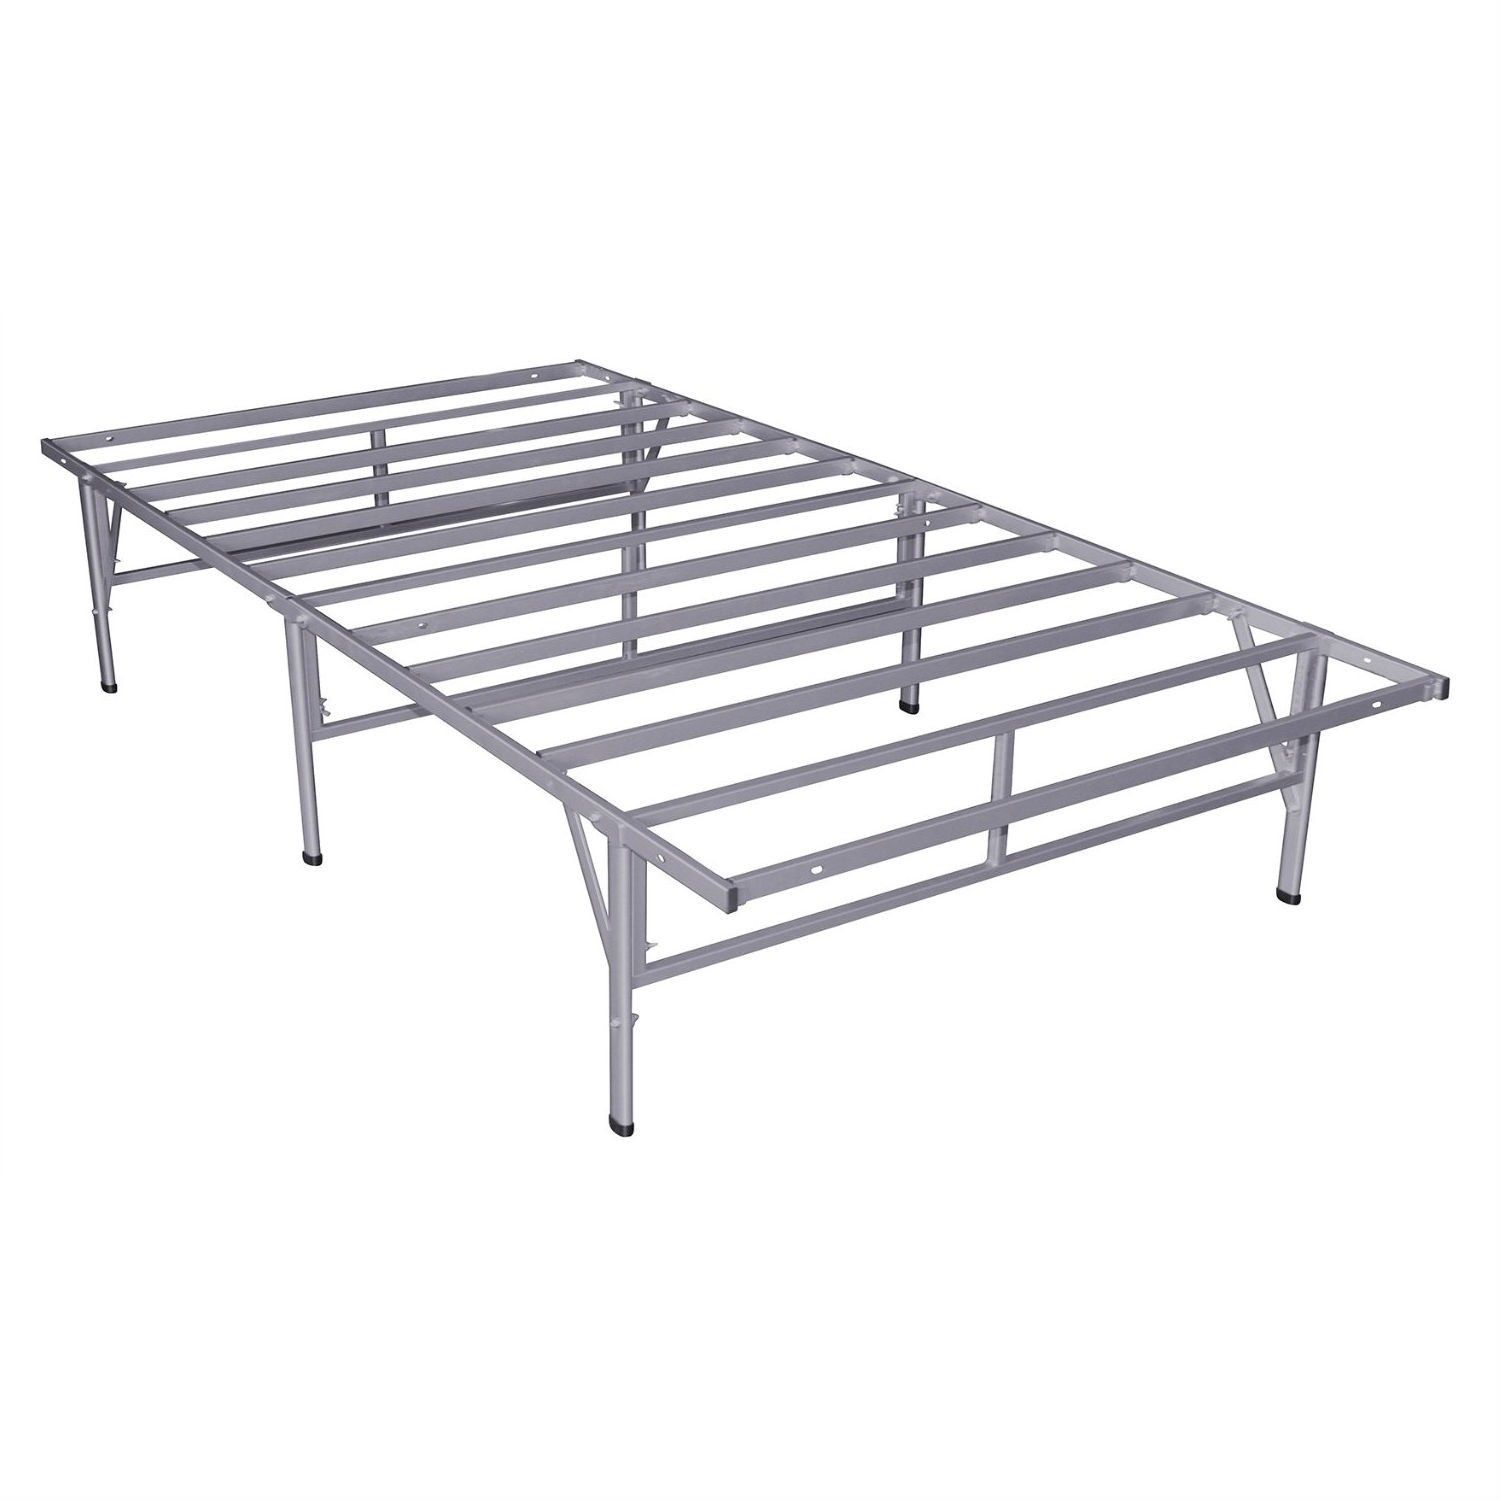 King size Platform Bed Frame 14-inch High with Under-bed Storage Space